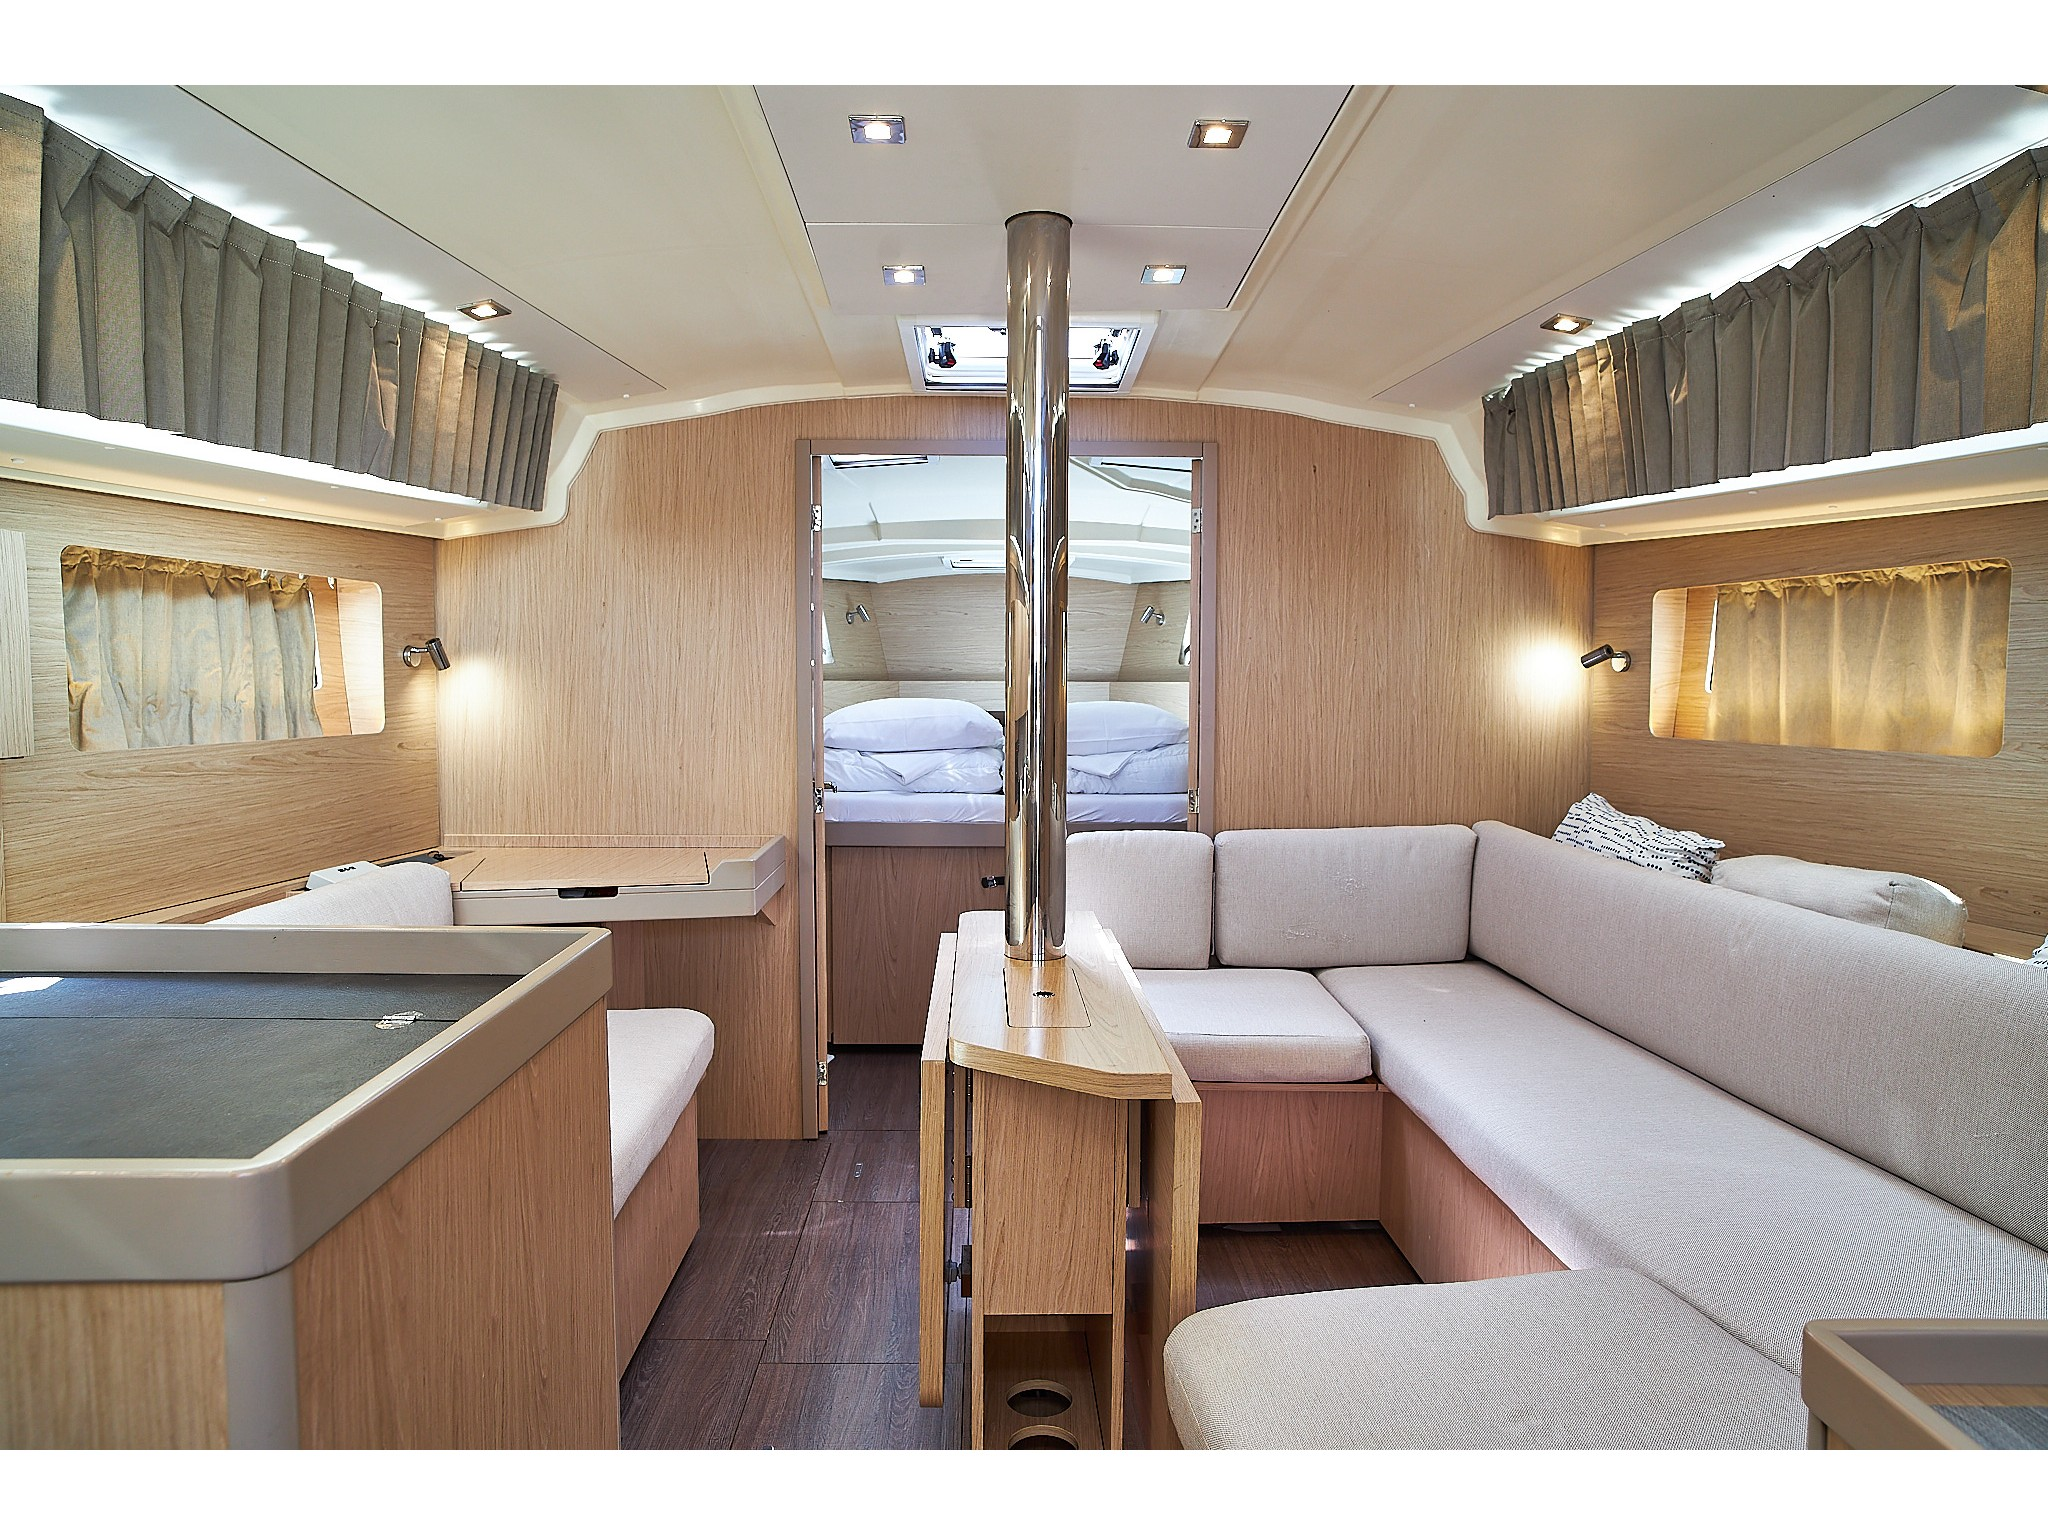 Oceanis 41.1 (White Beauty) Interior image - 5